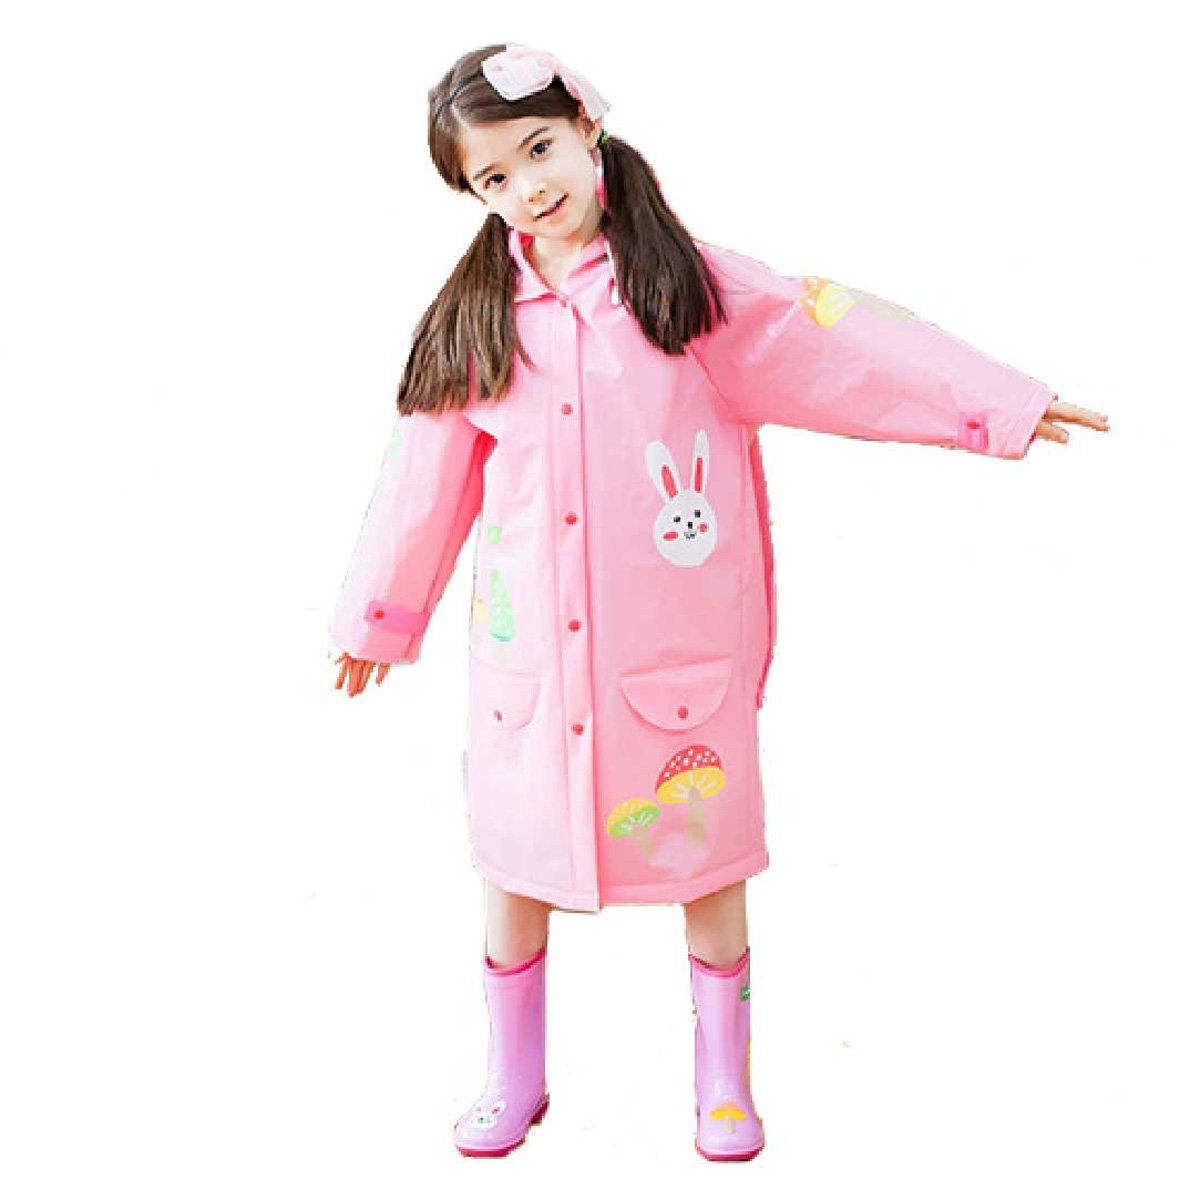 Triwonder Raincoat Rain Cape Ponchos for Kids Girls Boys with Backpack Position